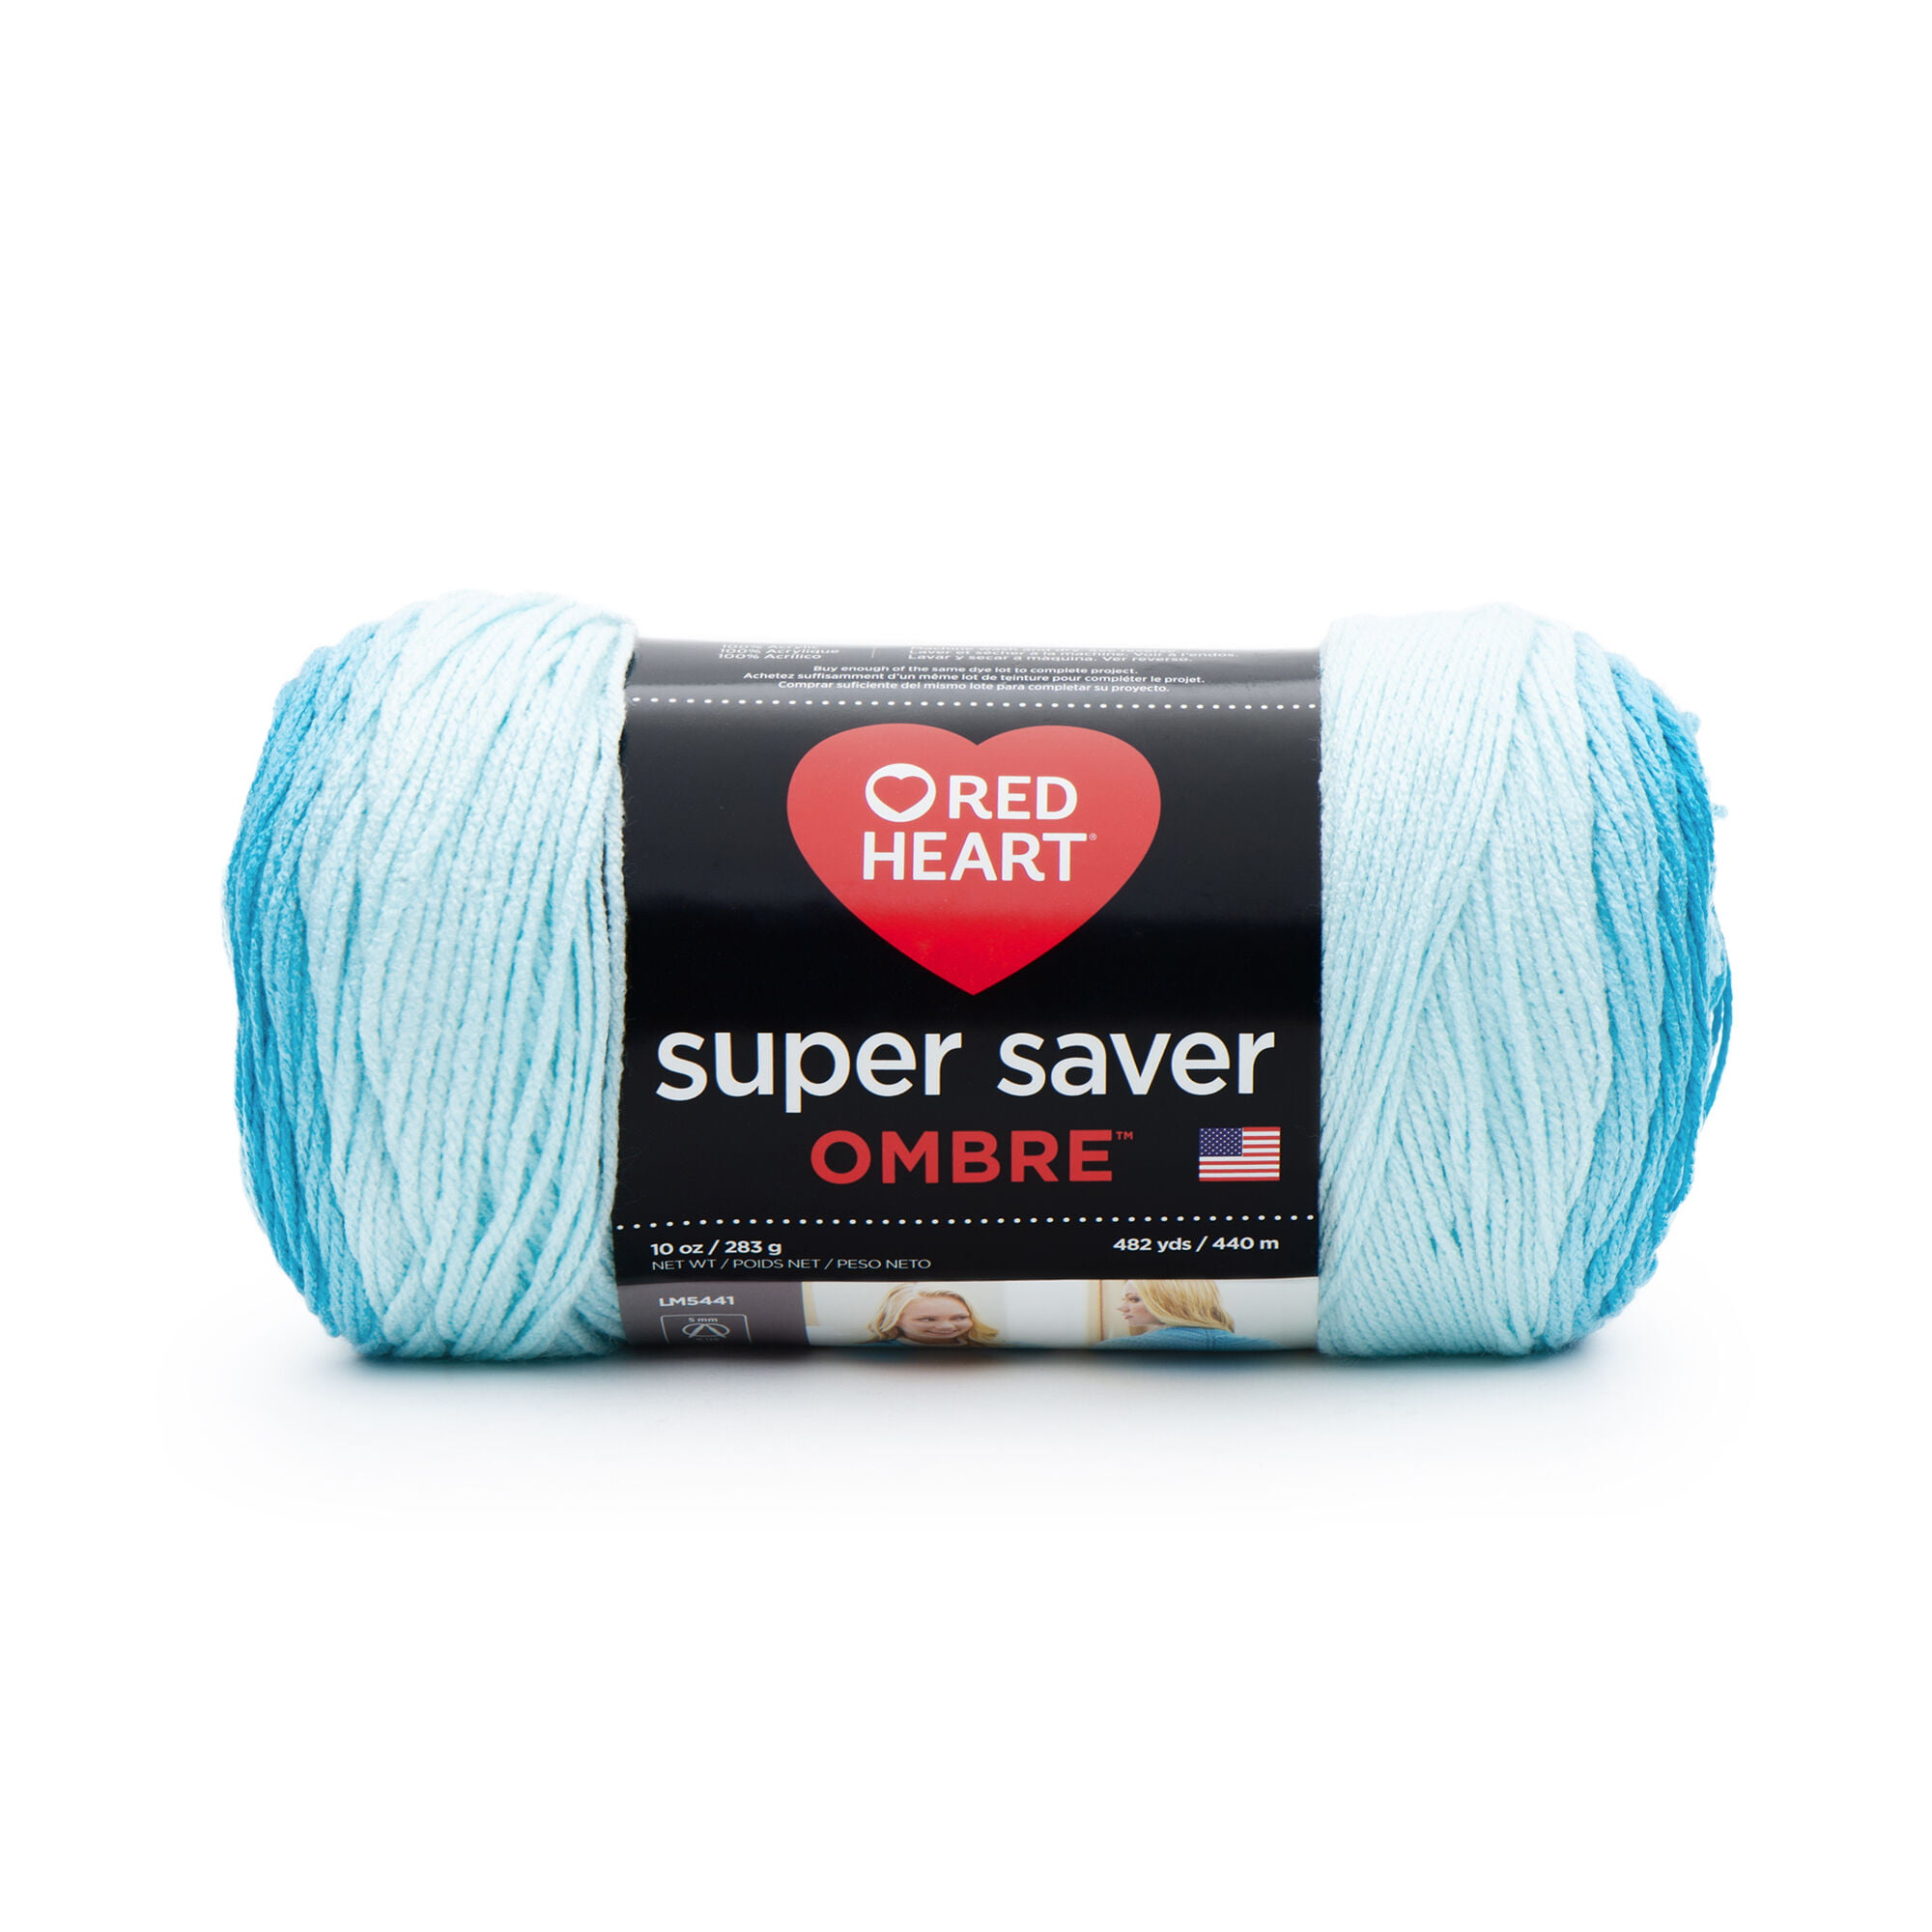 Red Heart Super Saver Ombre Yarn 10 oz DEEP Teal